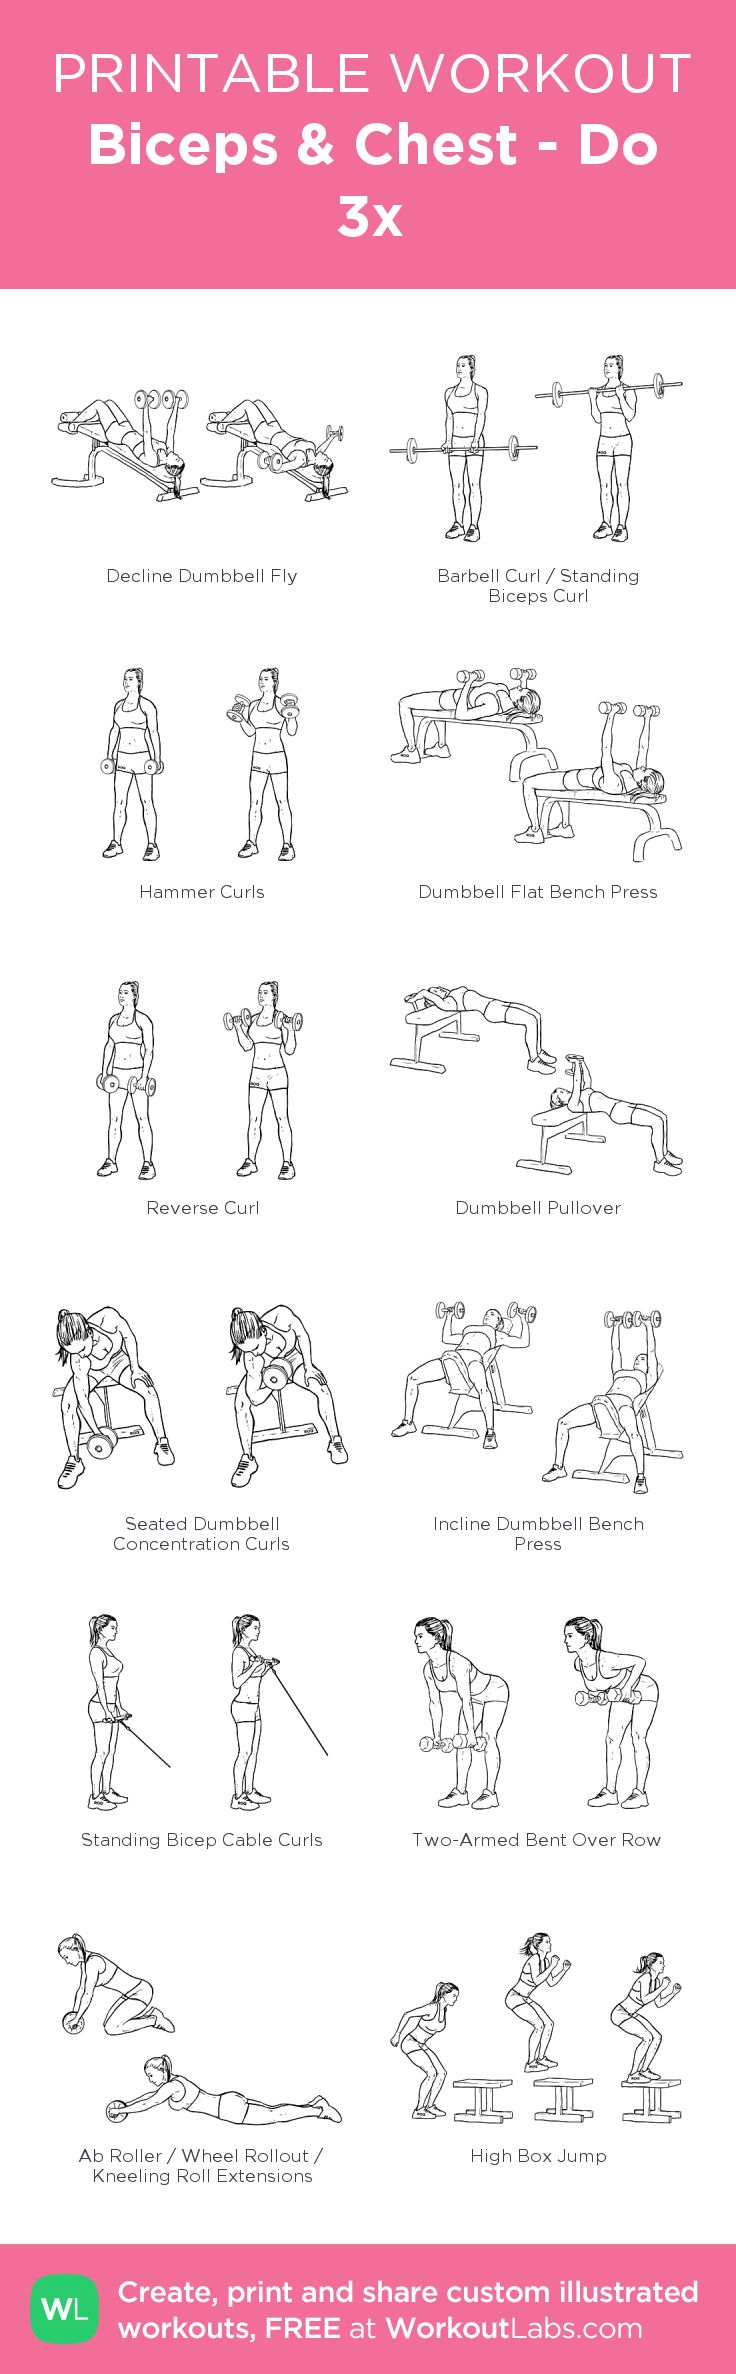 Biceps & Chest - Do 3x:my visual workout created at WorkoutLabs.com • Click through to customize and download as a FREE PDF! #customworkout